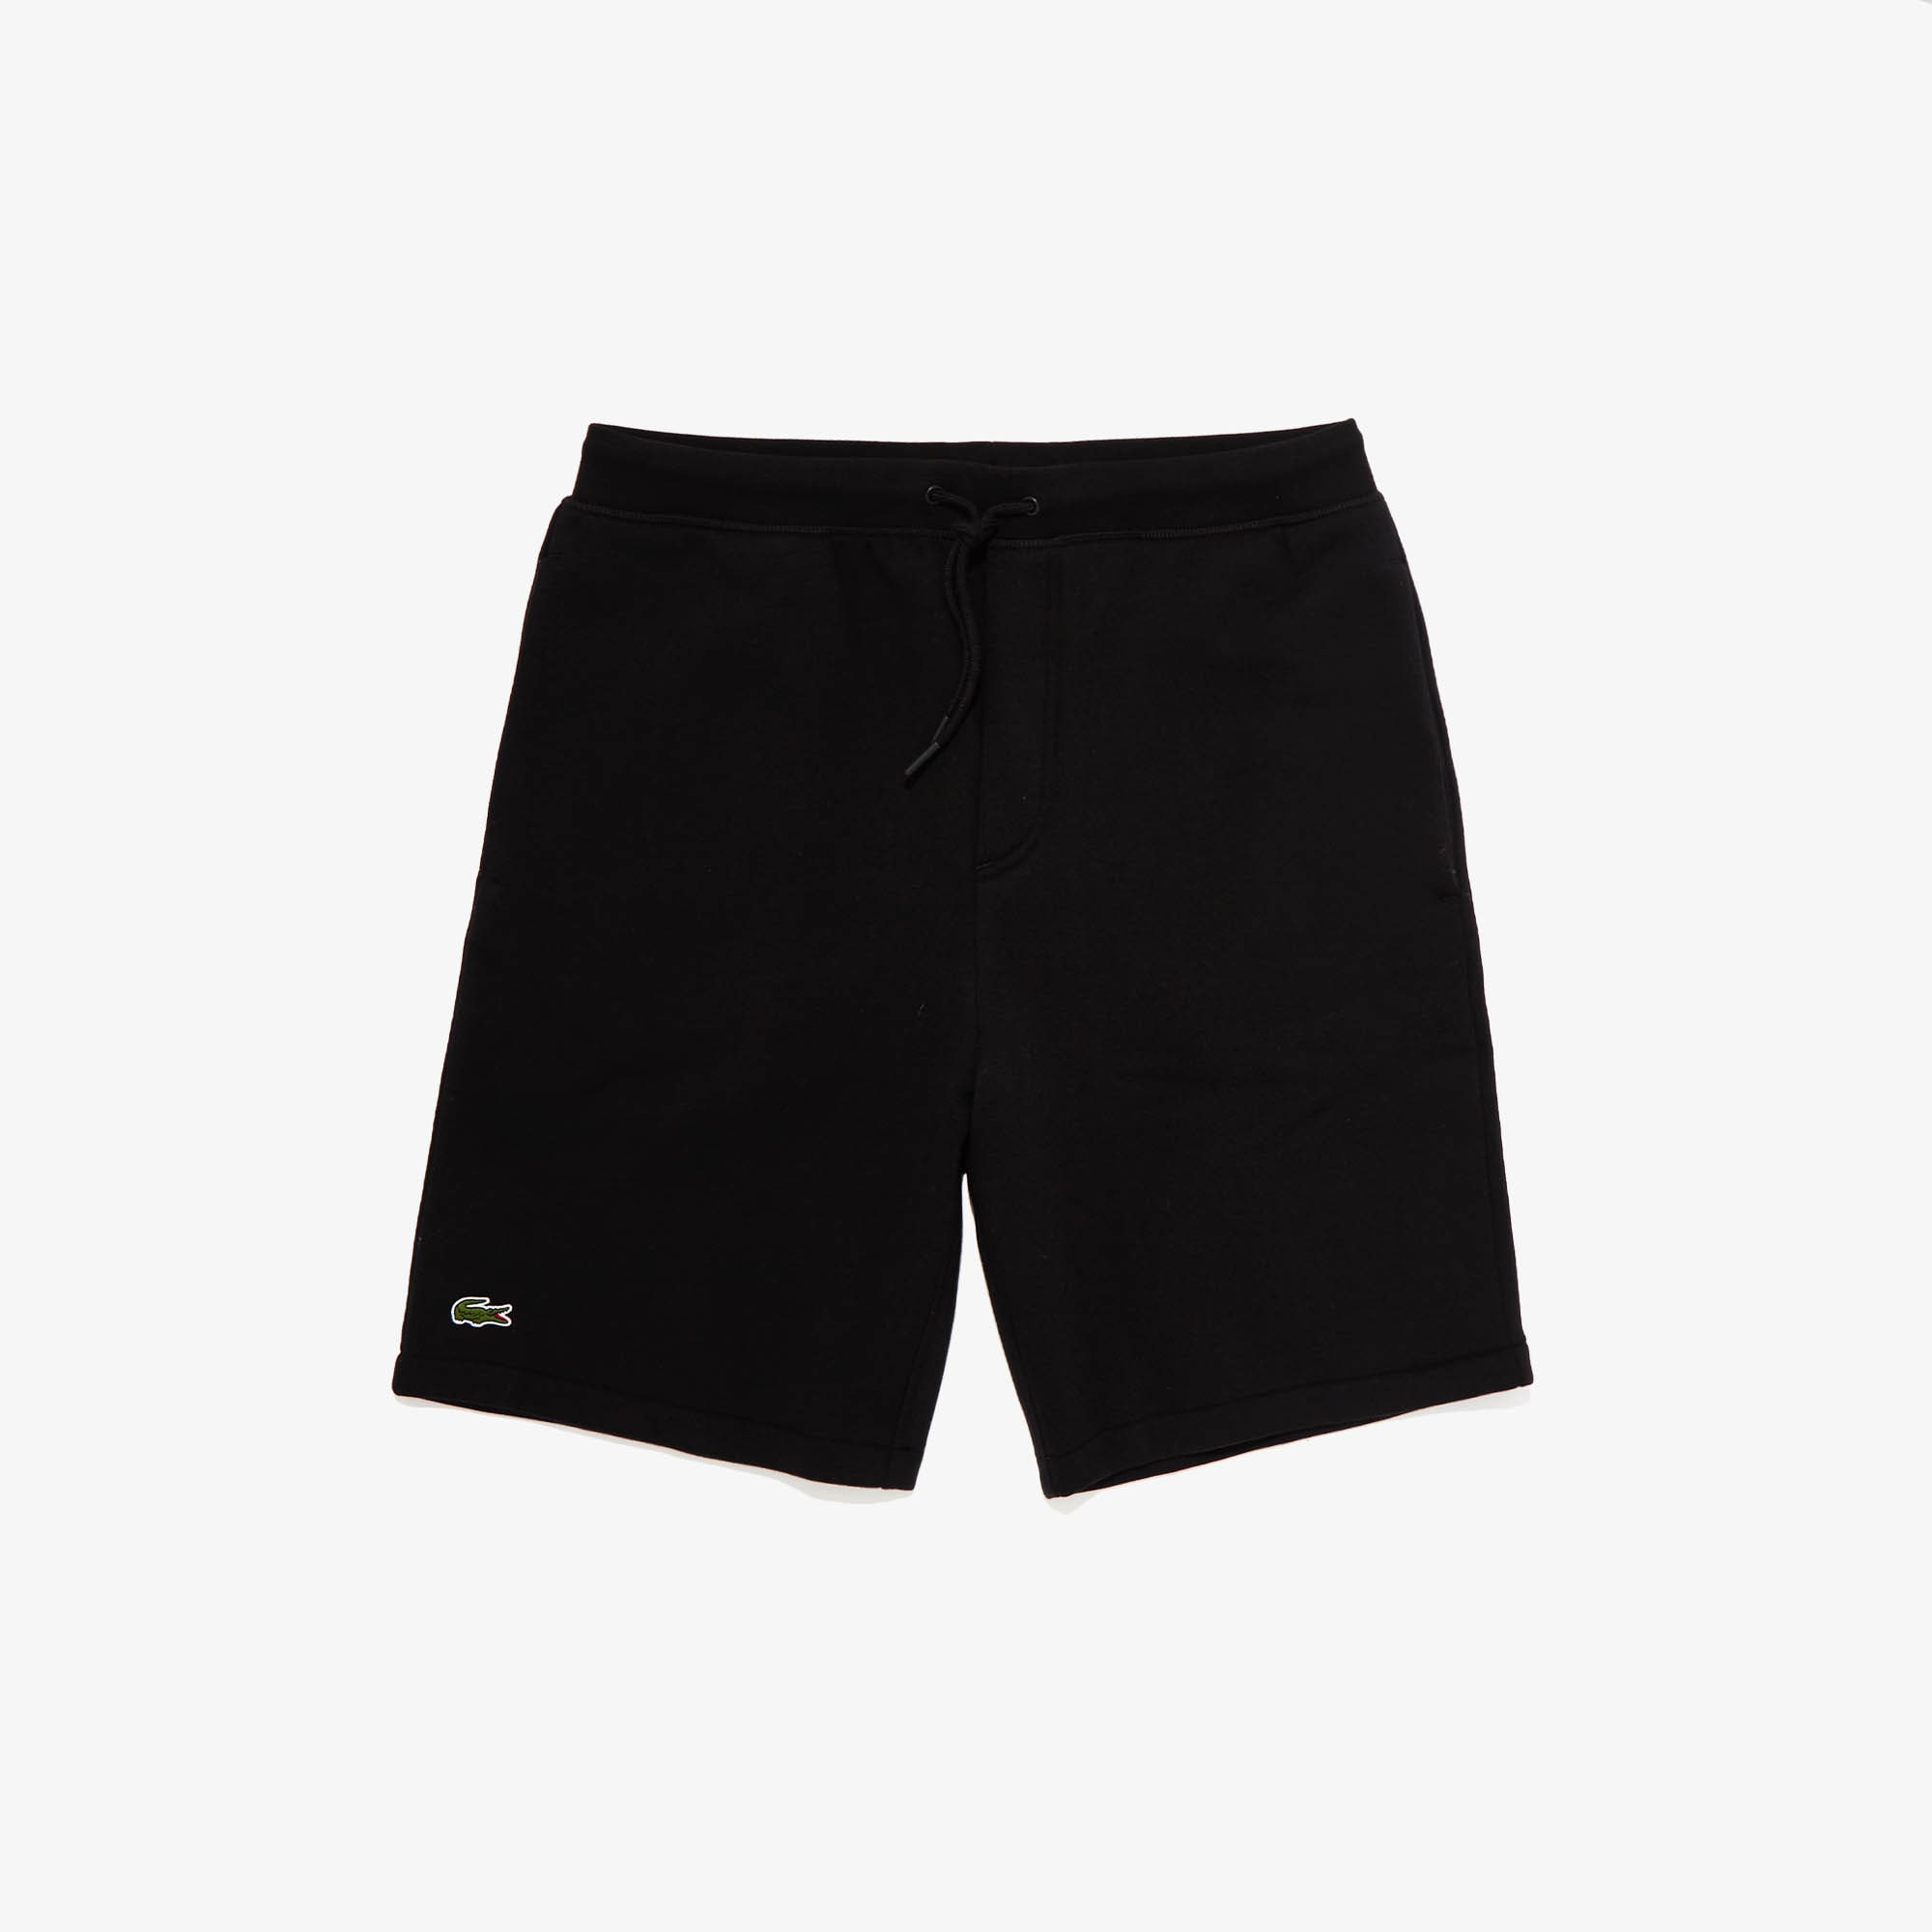 Lacoste Shorts Men's SPORT Camo Logo Fleece Short